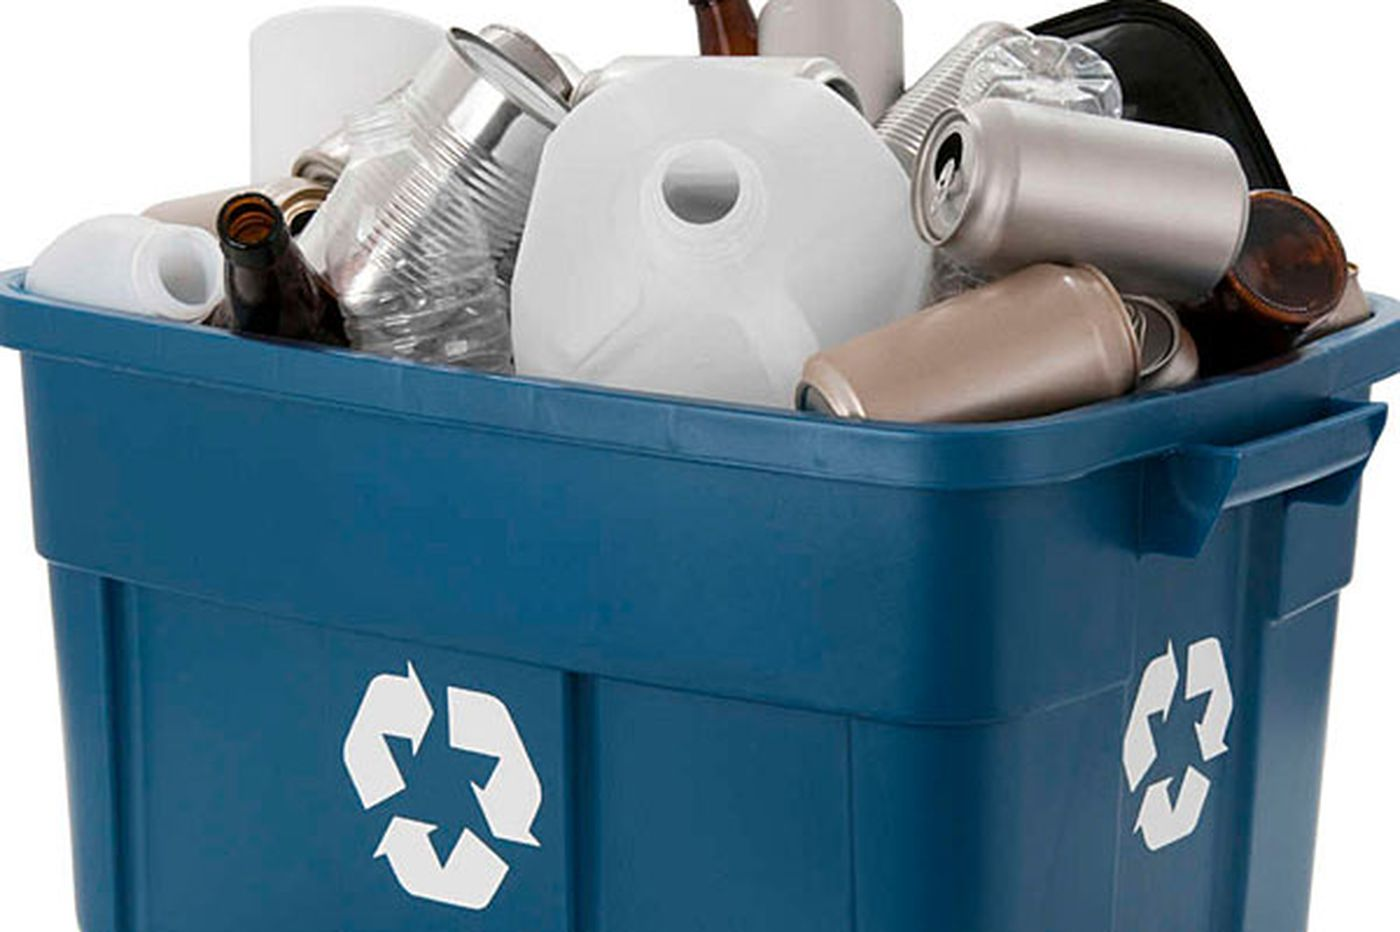 Readers' ideas about recycling